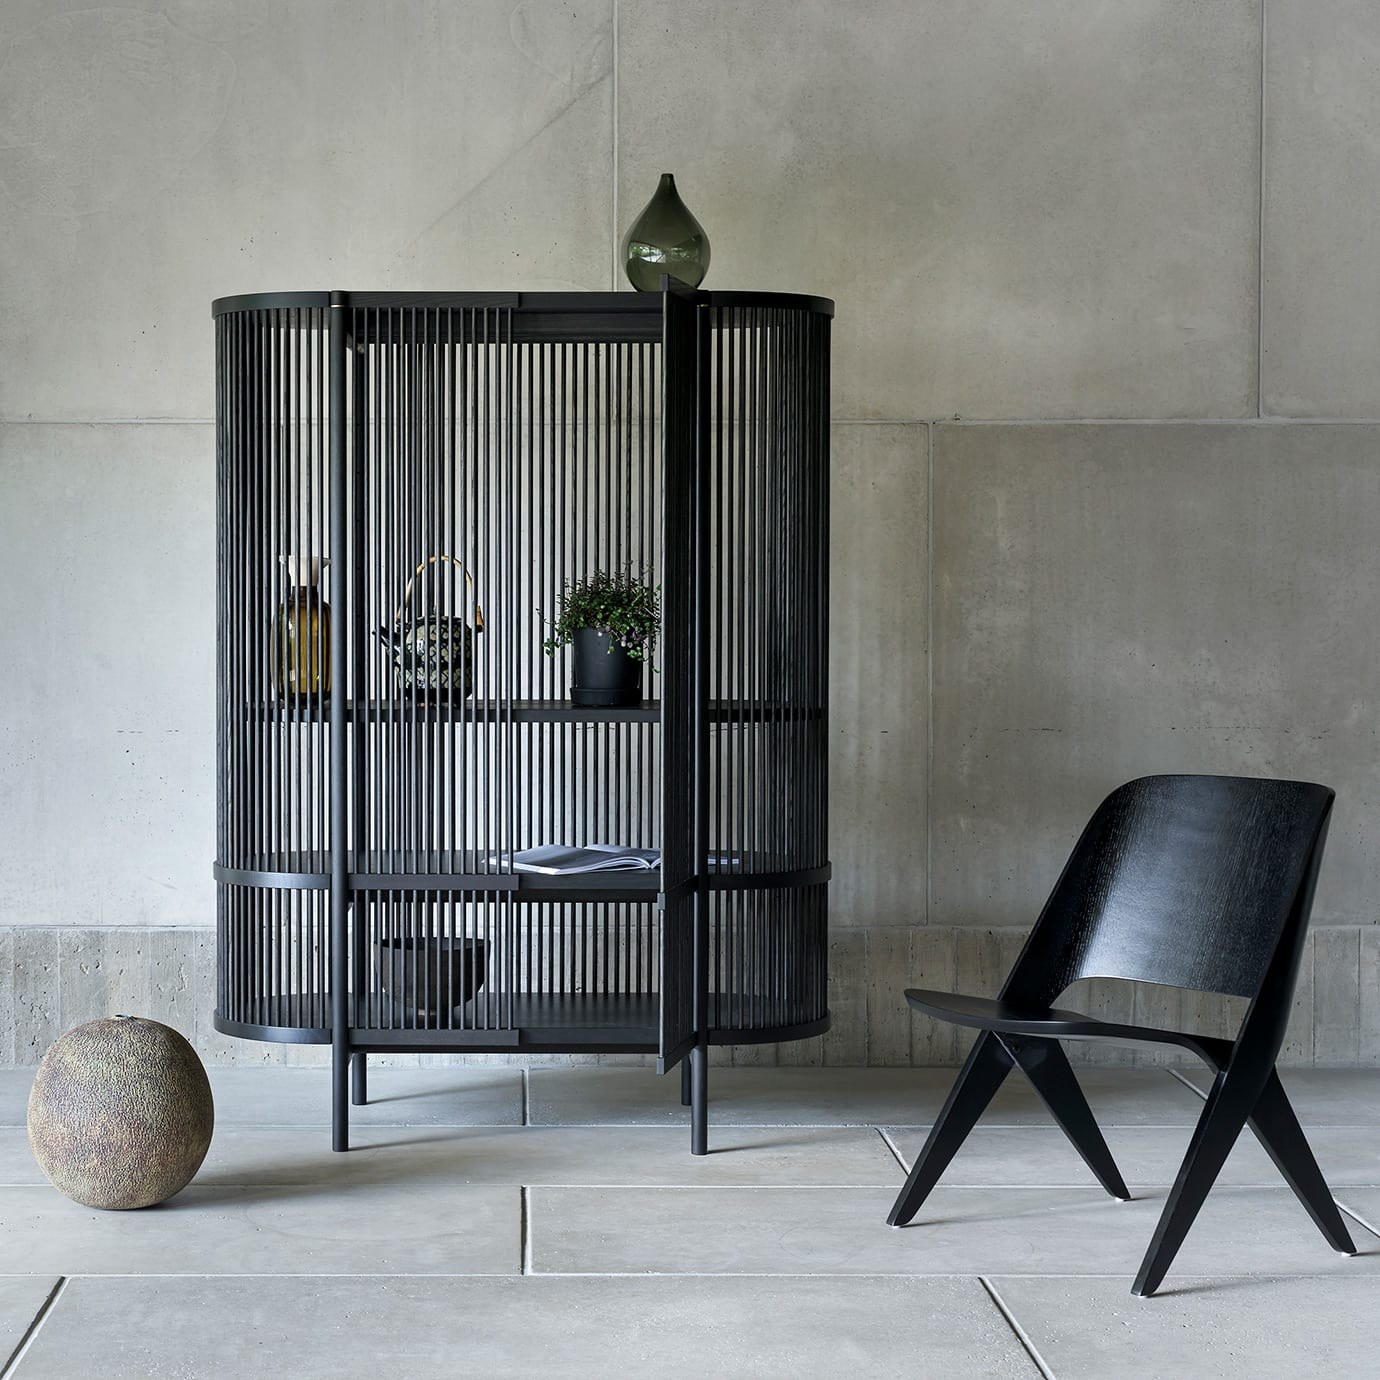 A black cabinet and a chair in a stone room.